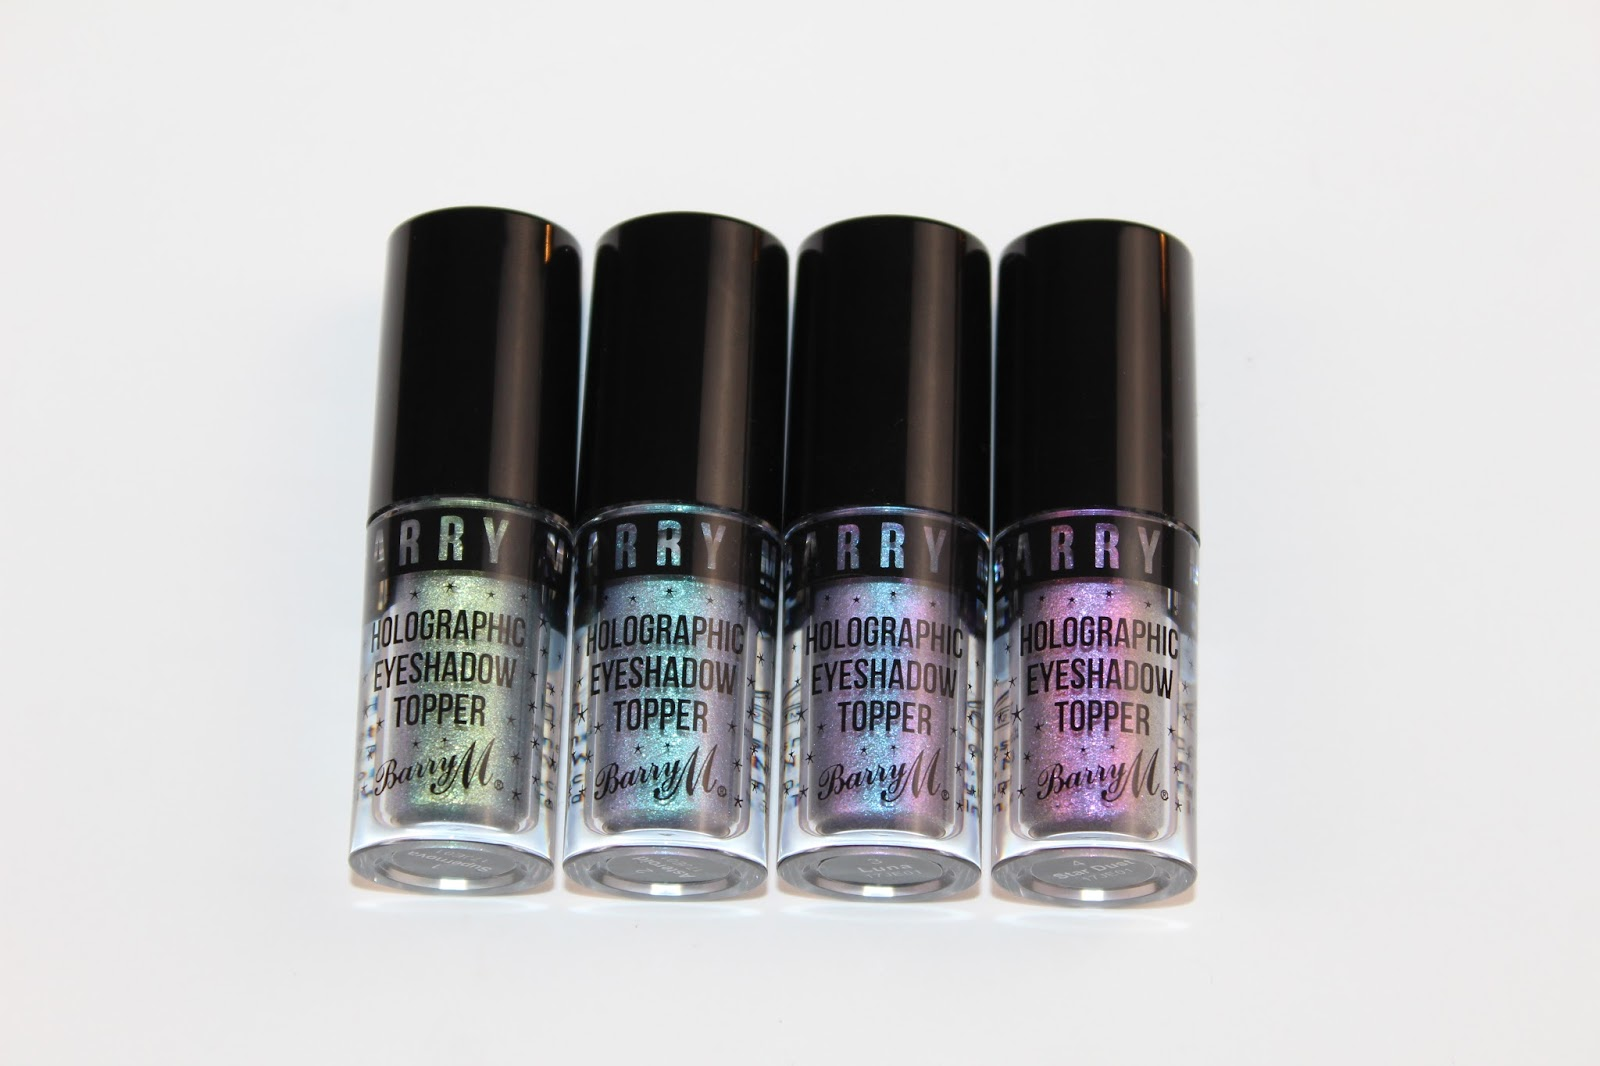 6ed6866af89 Barry M Holographic Eye Topper Review and Photos - Stila Magnificent Metals  Dupes?!